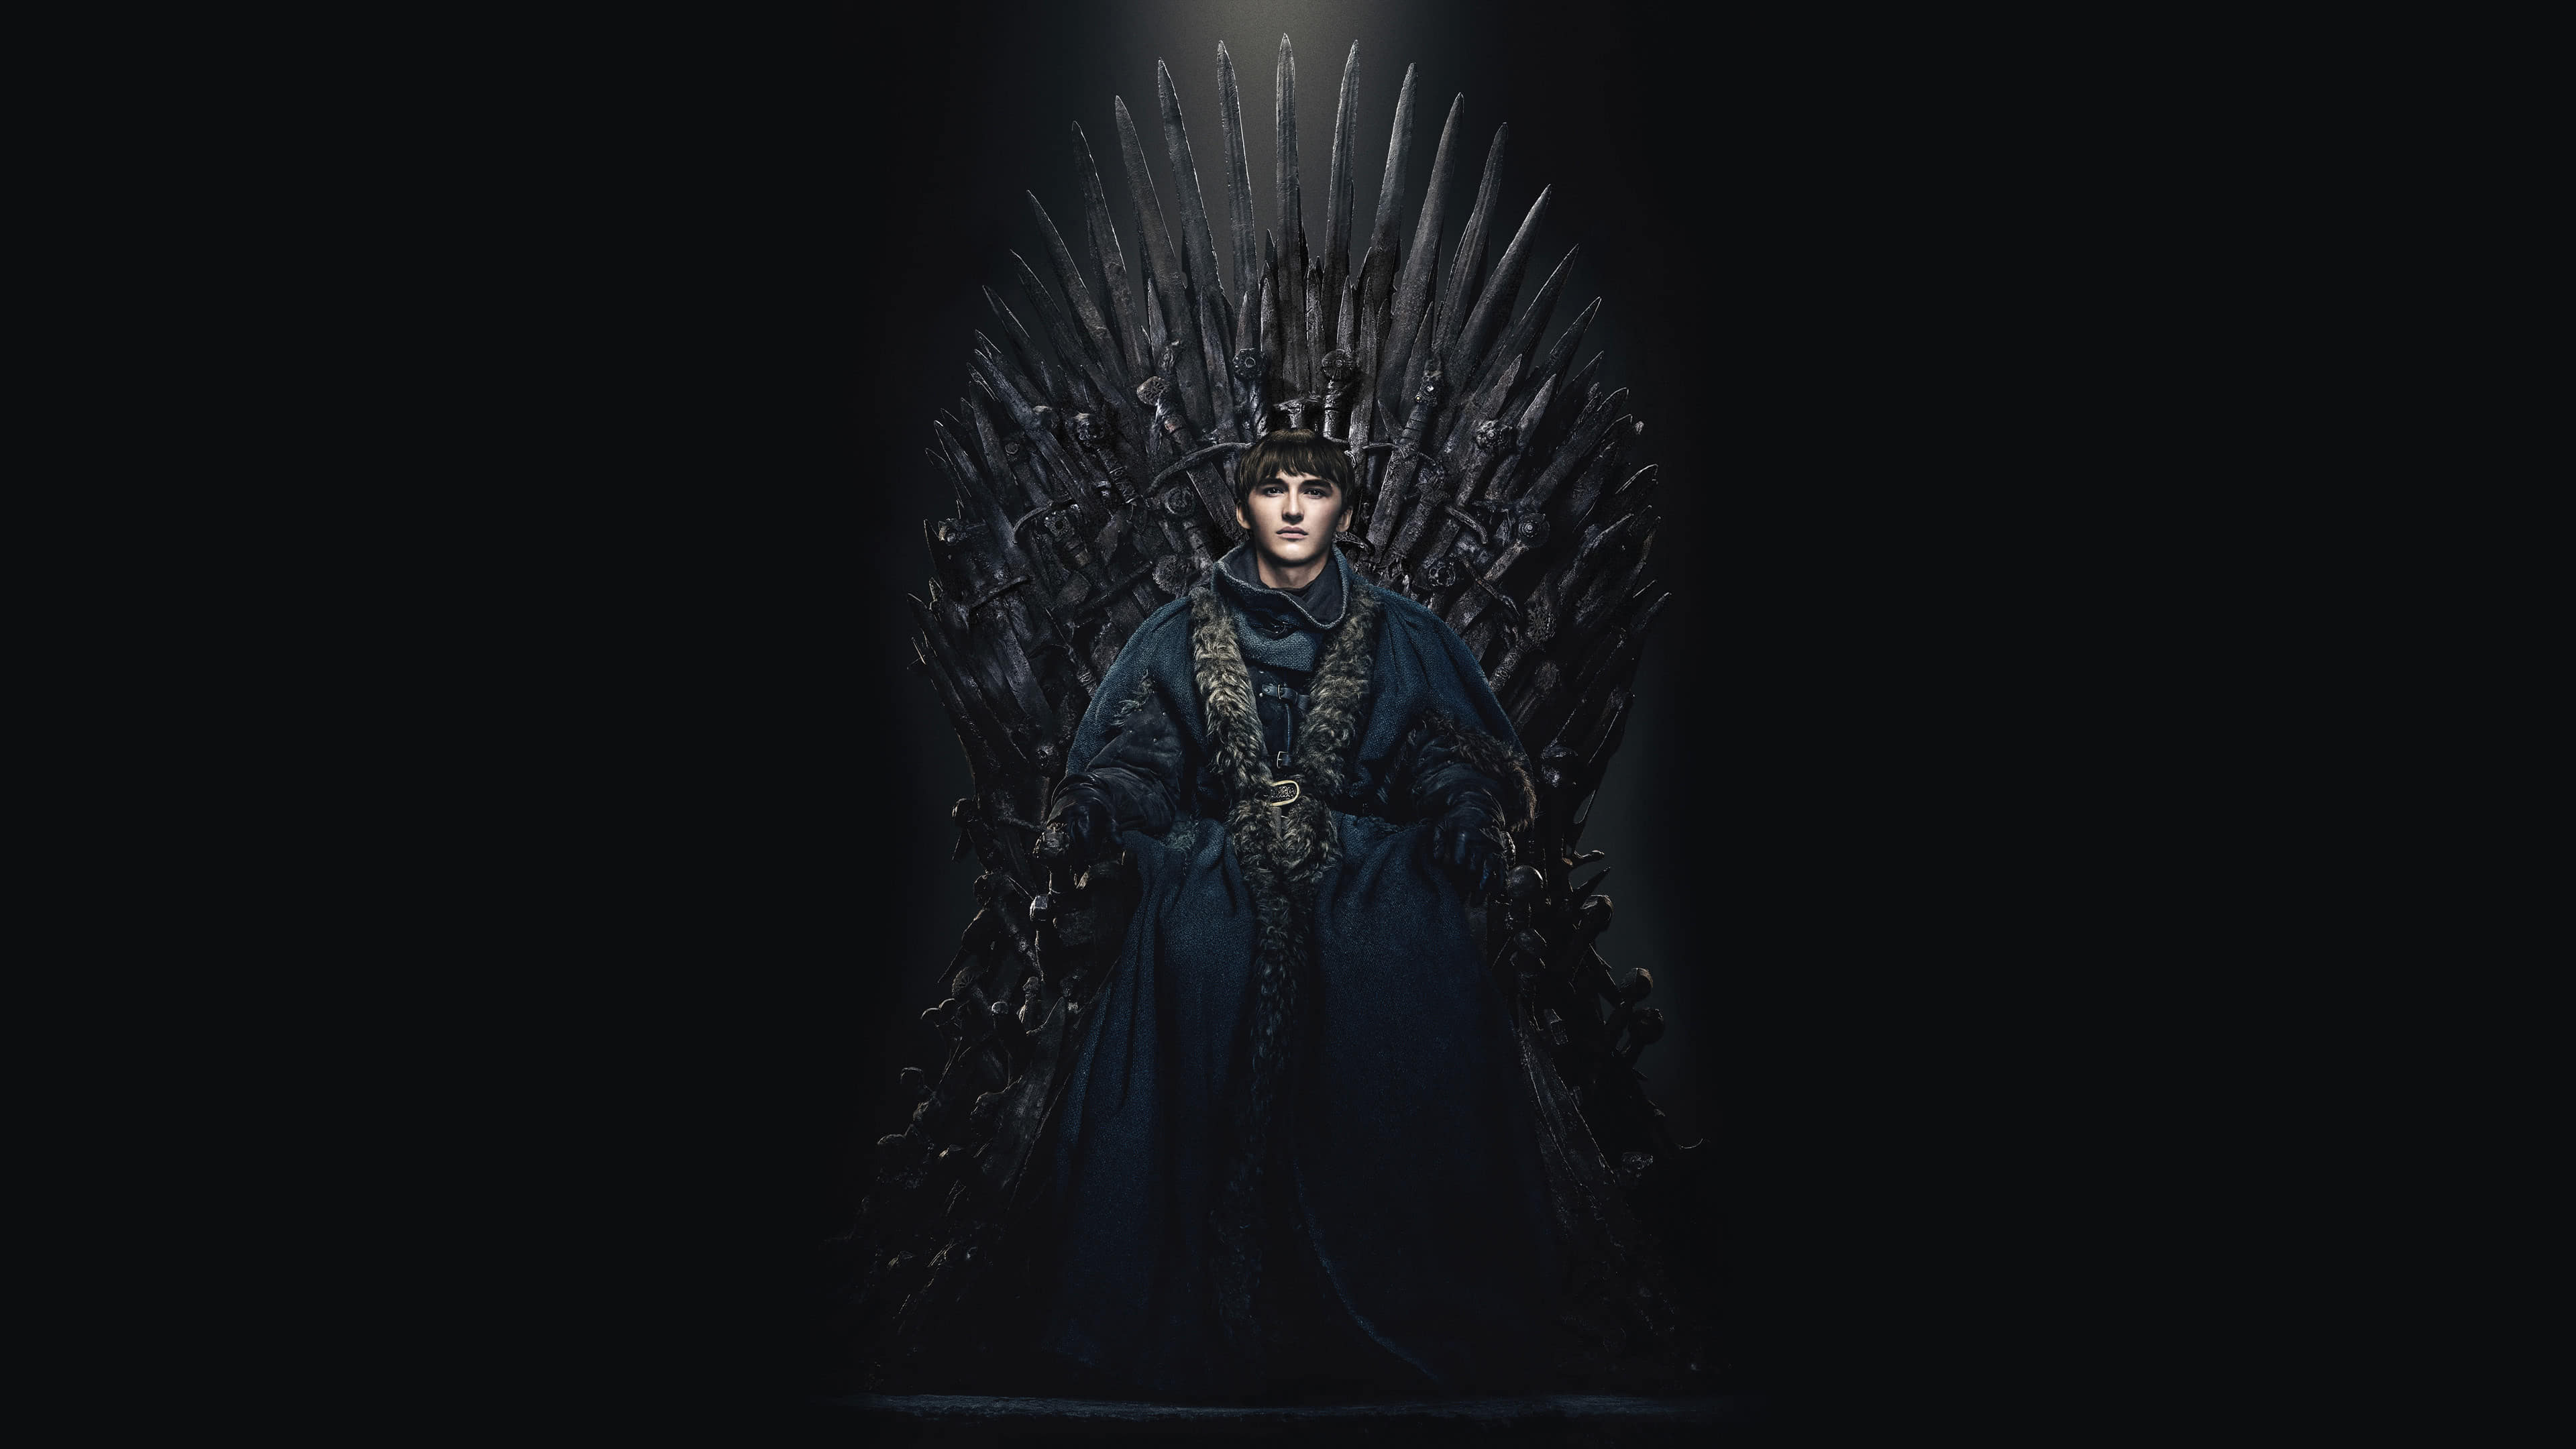 Game Of Thrones Iron Throne Bran Stark Uhd 4k Wallpaper Pixelz